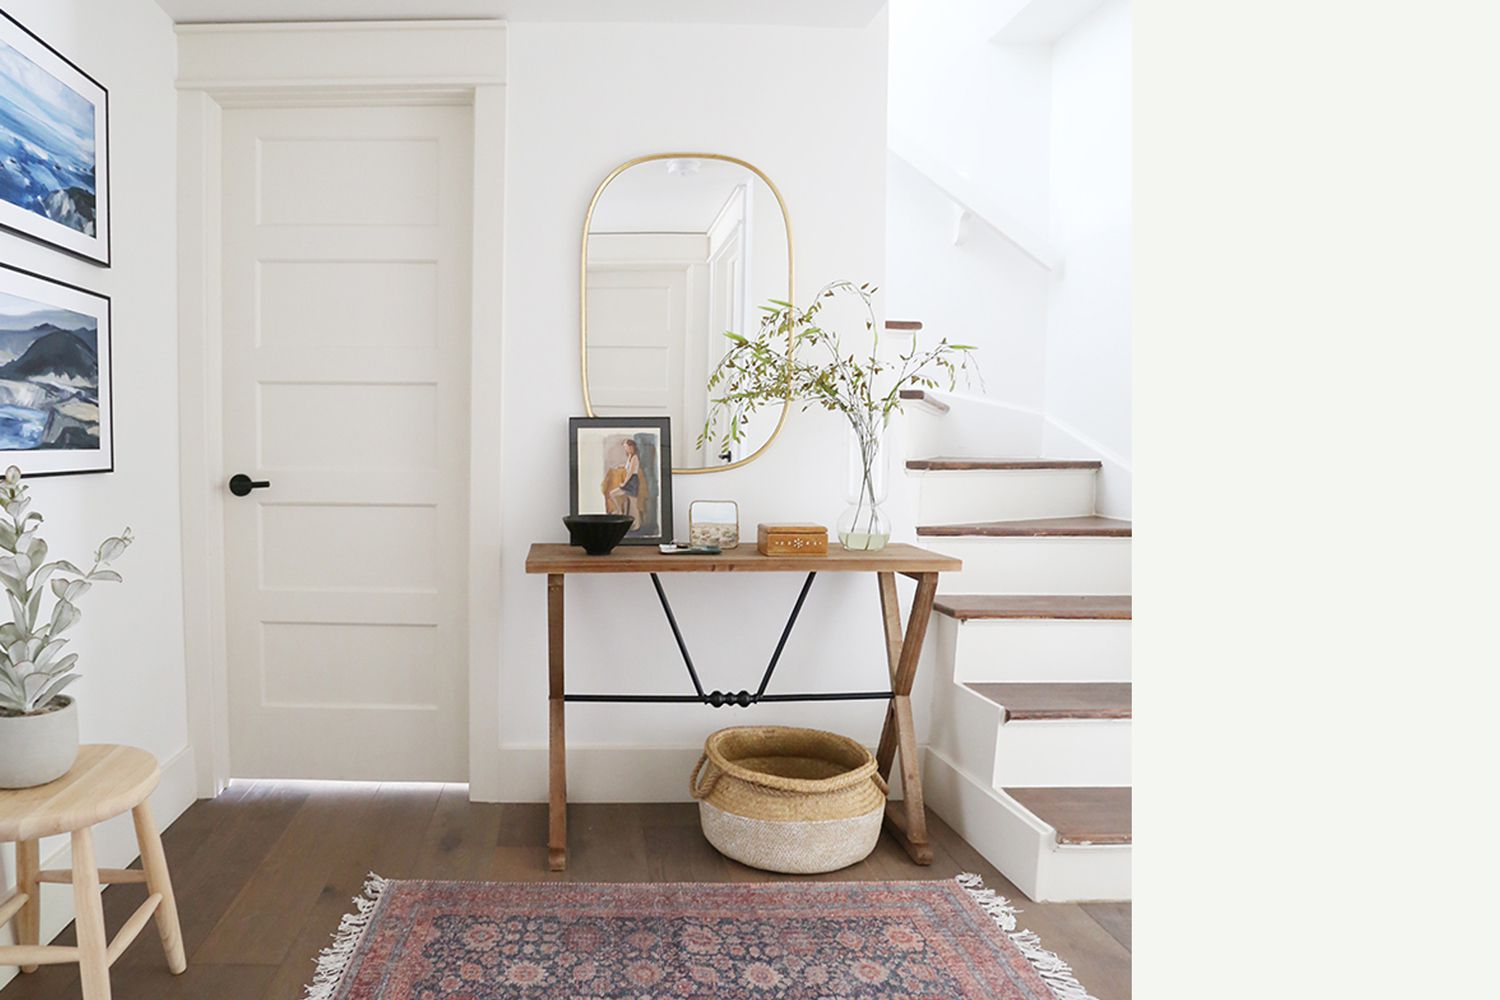 Interior painted a similar color to Benjamin Moore's Chantilly Lace